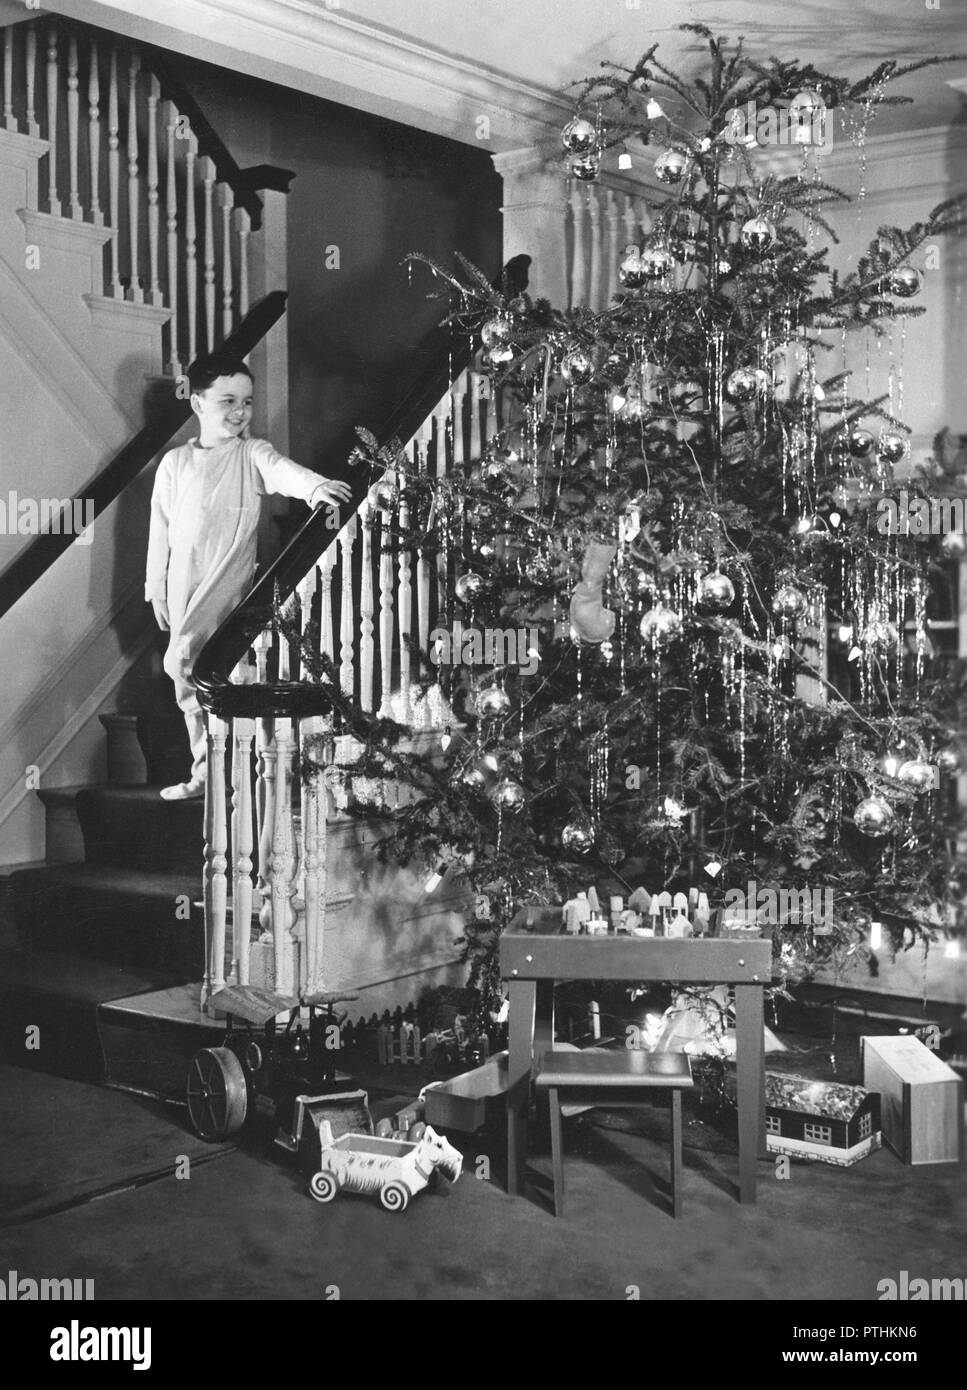 Christmas in the 1940s. A boy is coming down the stairs on christmas day, to the room where the christmas tree is standing. There are christmas presents under the tree. Sweden 1940s - Stock Image